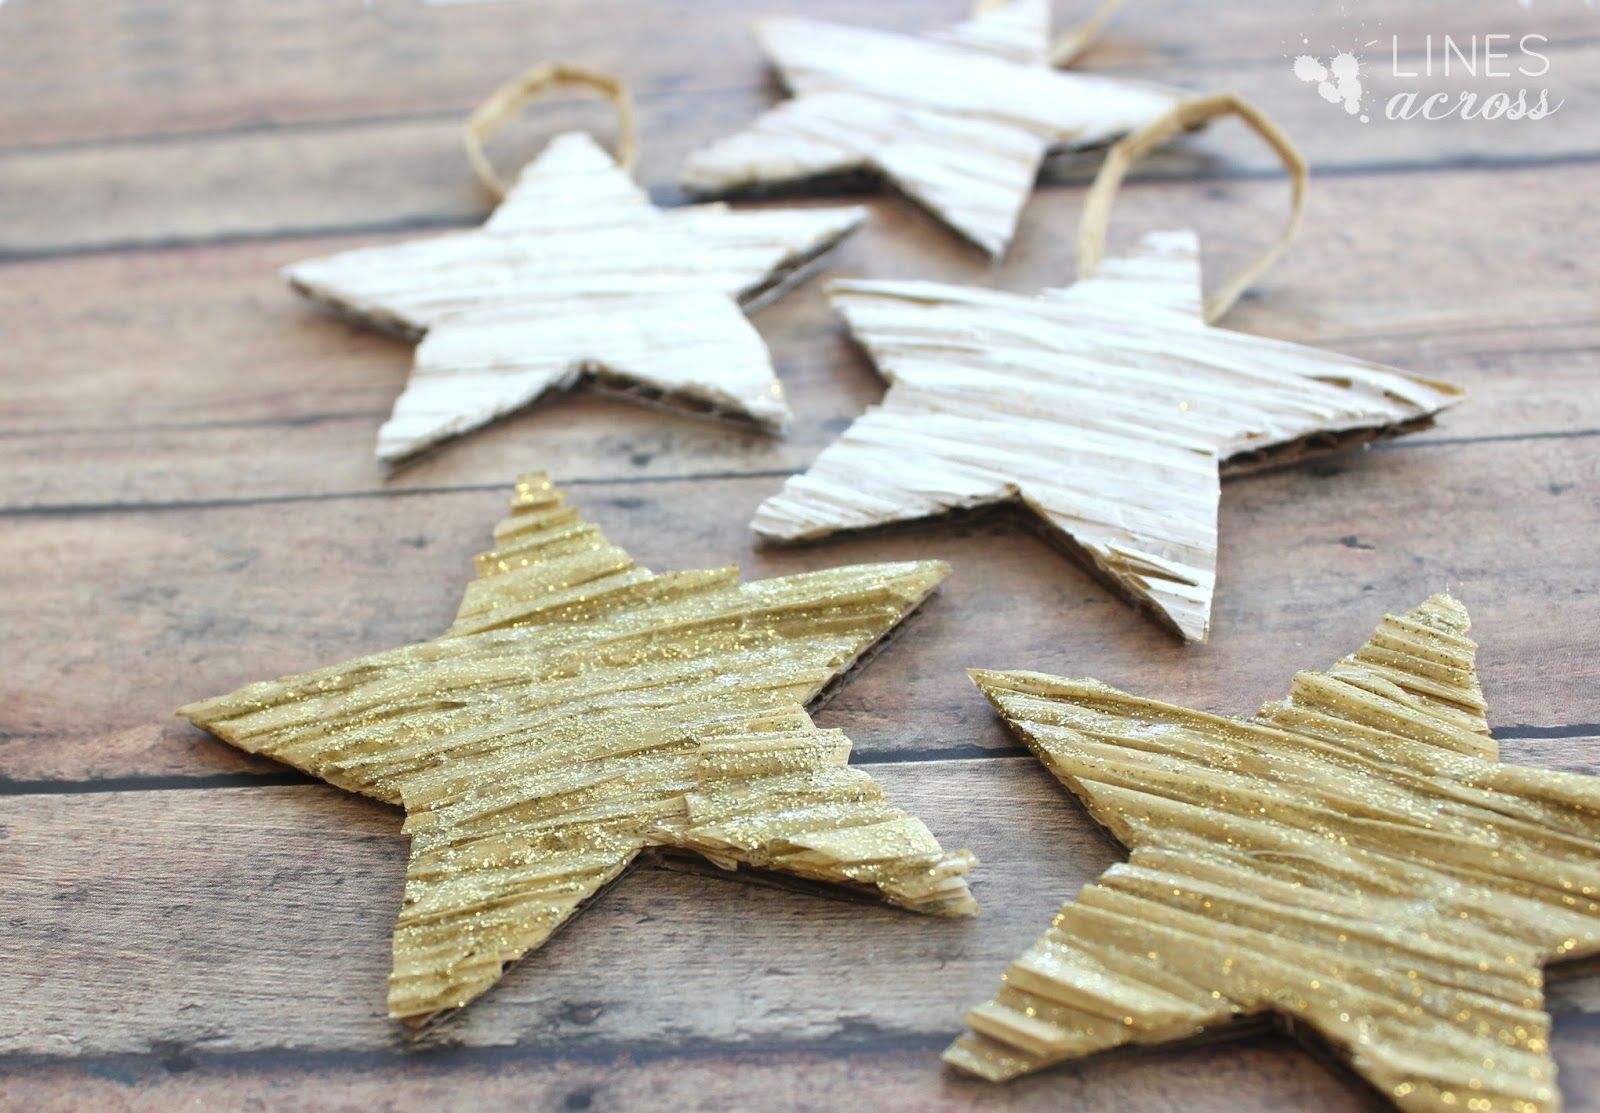 I love making quick and easy ornaments to help decorate the tree. My kids and I love stars, so I thought I'd make a handful of textured stars in white and glittery gold for the tree. What you need: 1. Cardboard and Scissors 2. Paint and Paint Brush 3. Hot Glue Gun 4. Kraft Ribbon What you do: 1. Cut out a bunch of stars from a piece of cardboard.